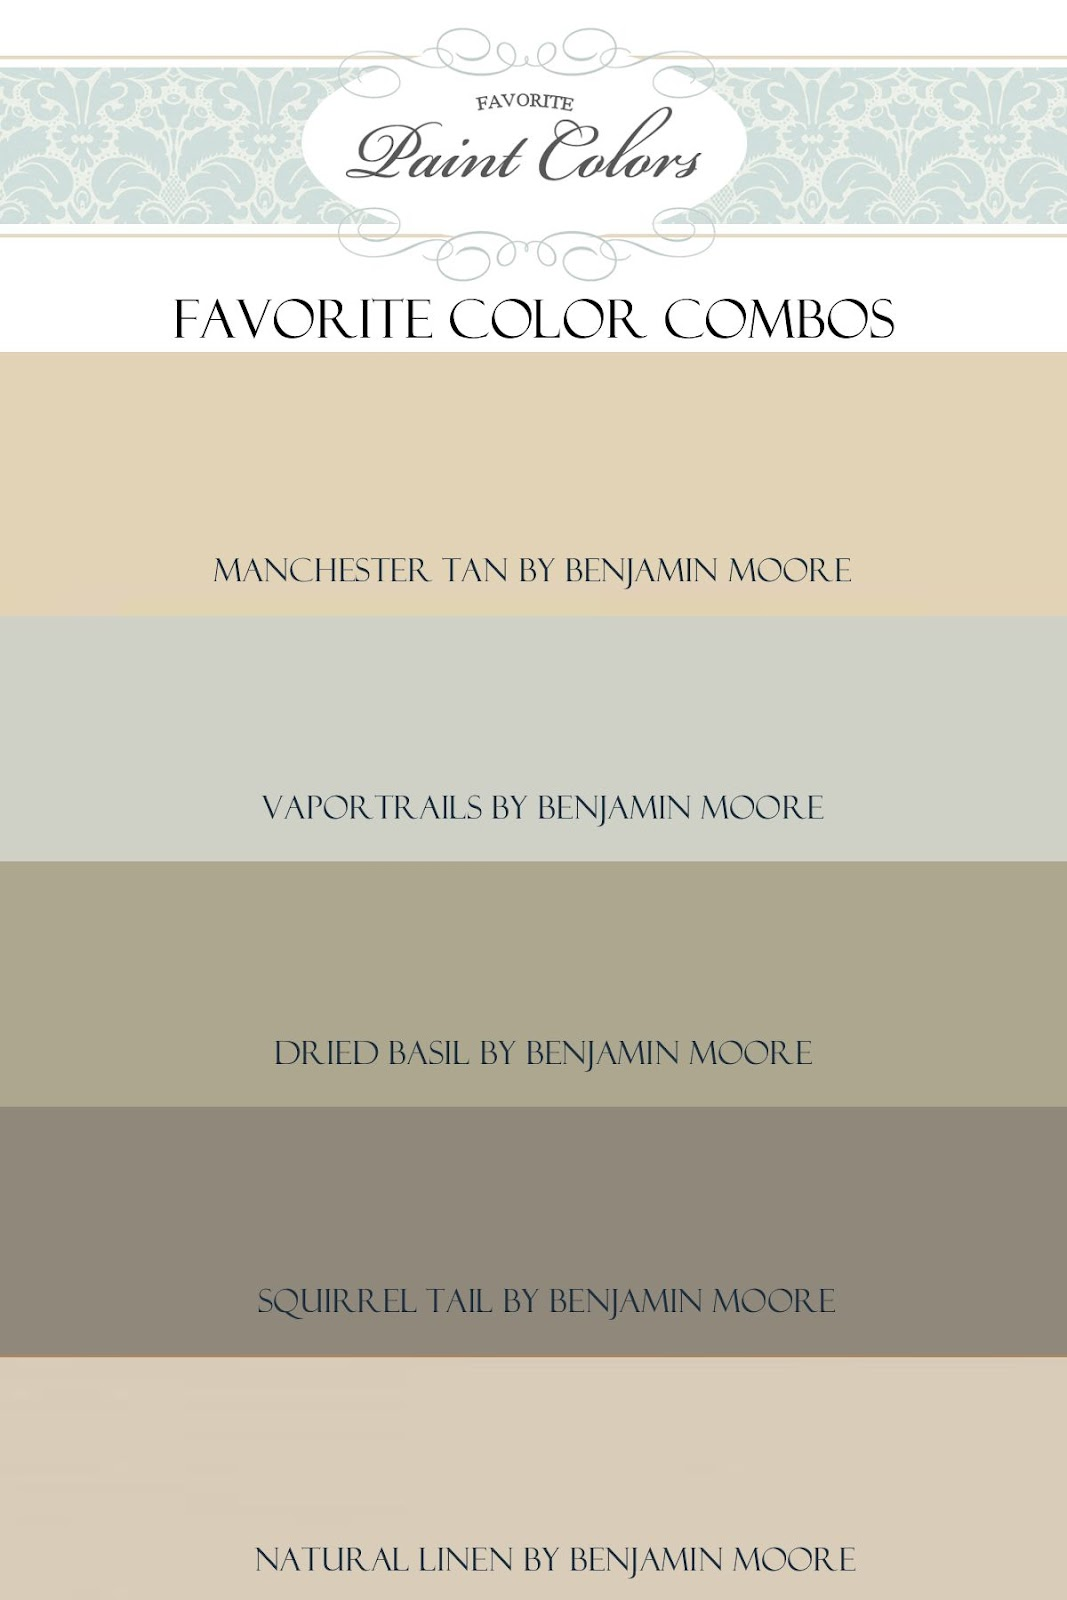 Favorite Paint Colors